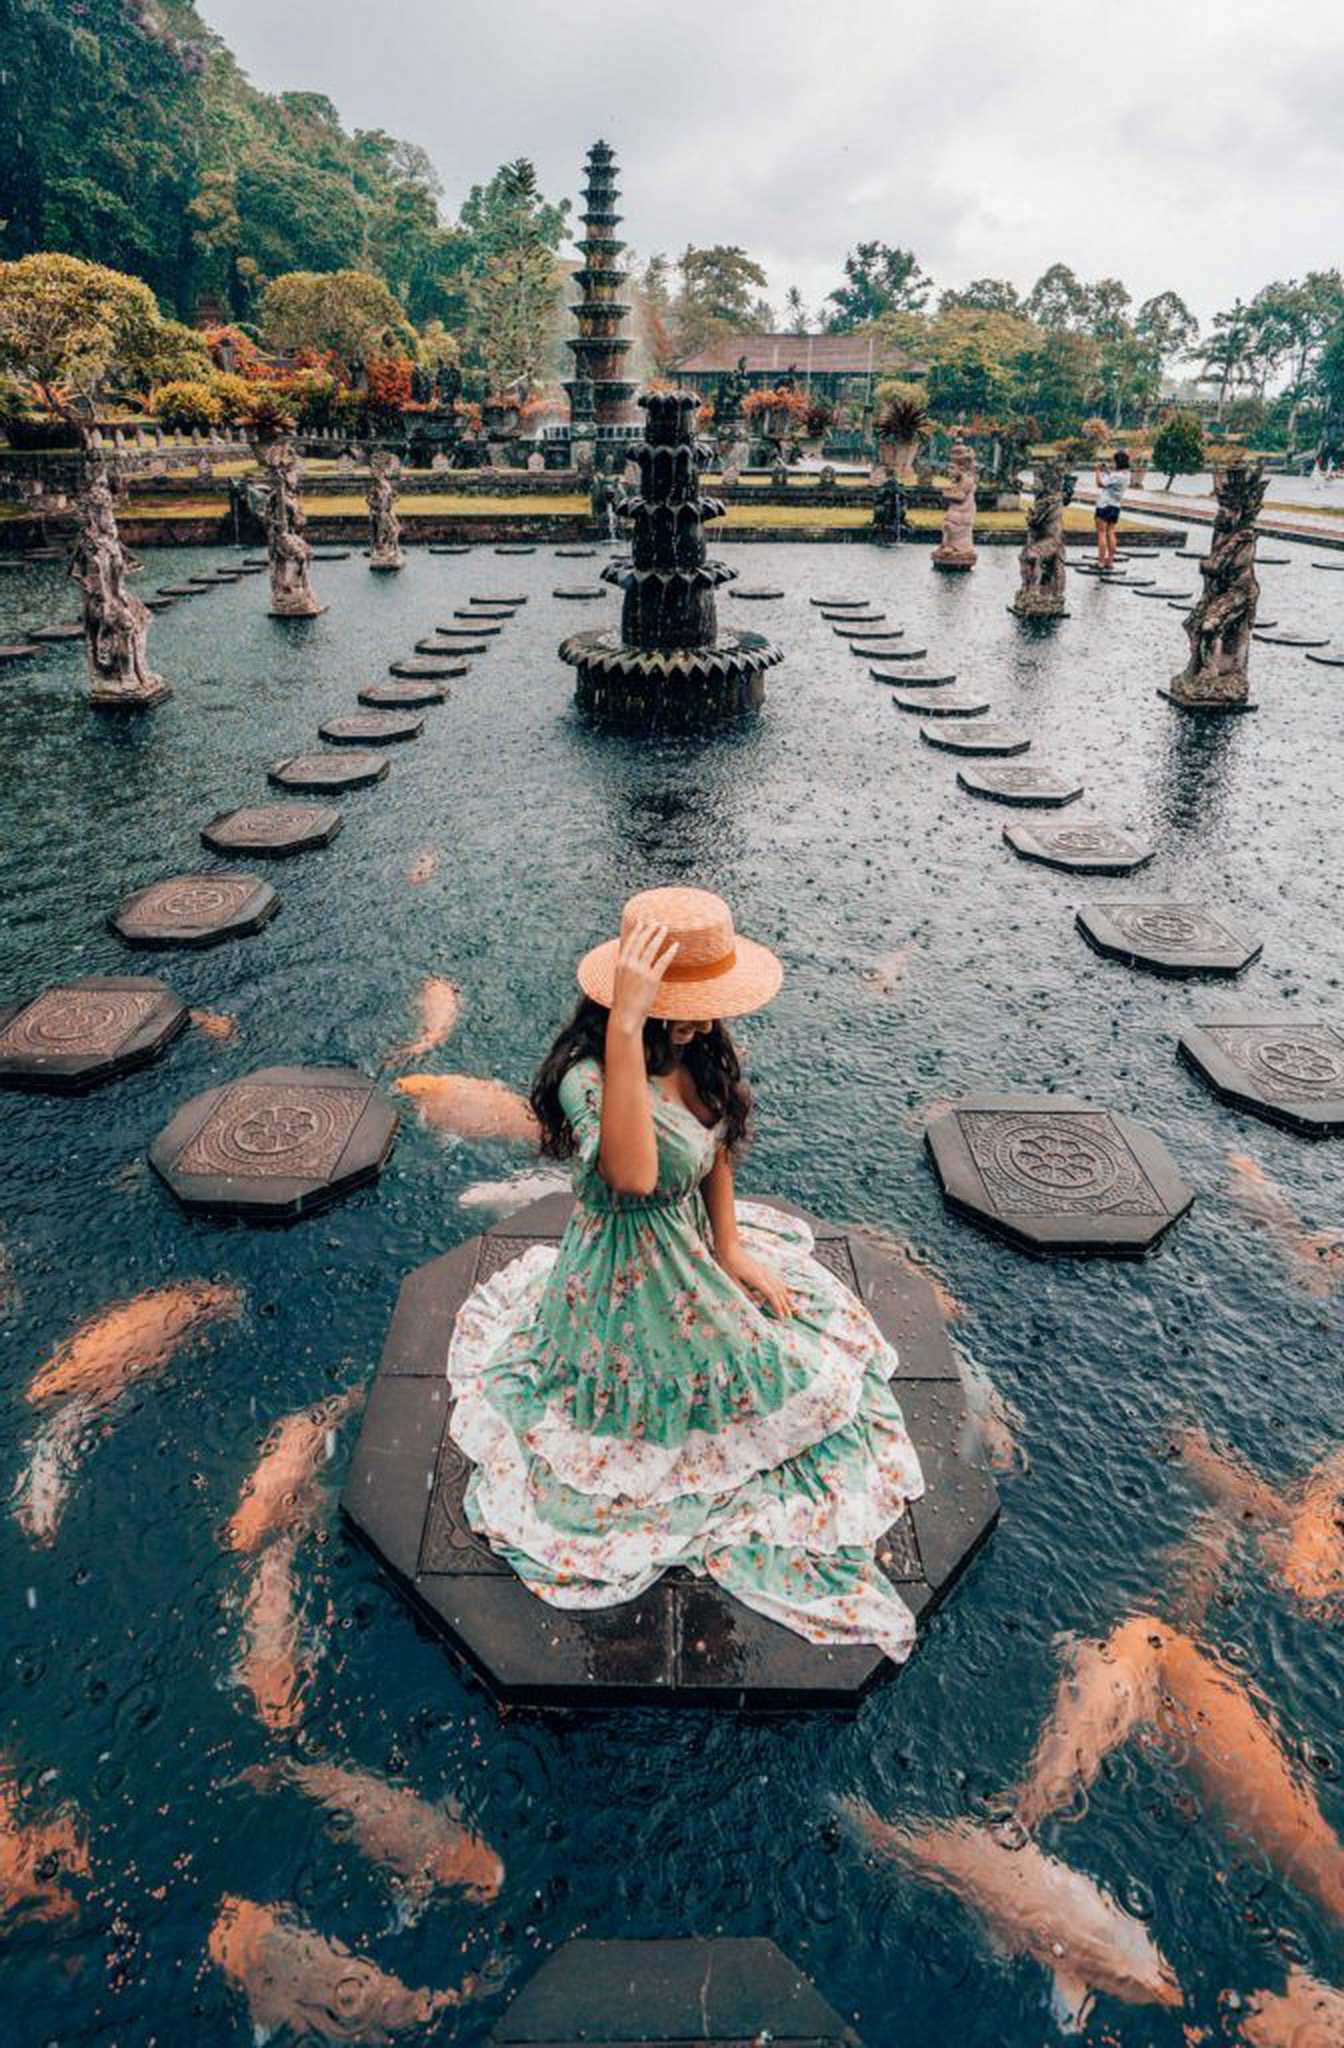 Tirta Gangga the Water Palace, Karangasem Bali Indonesia - Costume design, Dress, Finial, Gown, Hat, Outdoor structure, Sun hat, Tourism, Tourist attraction, Tower, Water feature